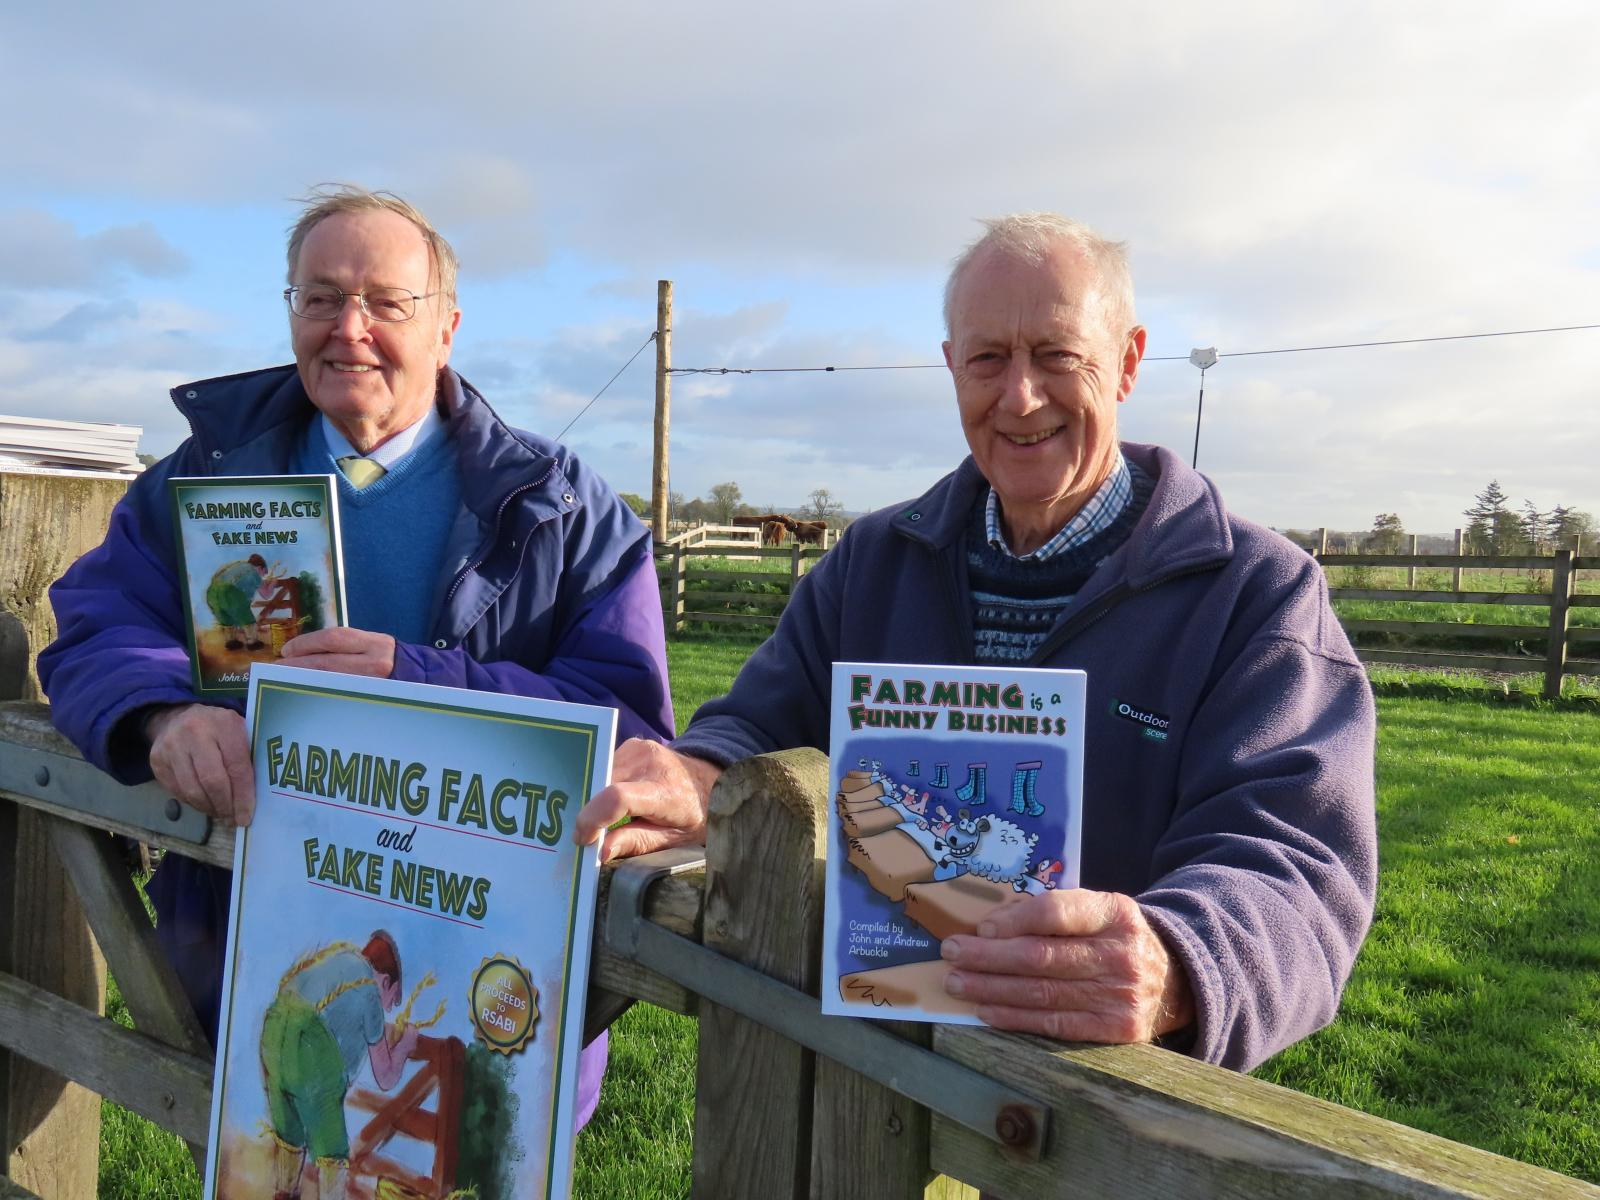 Industry support sought for new charity farming tales book